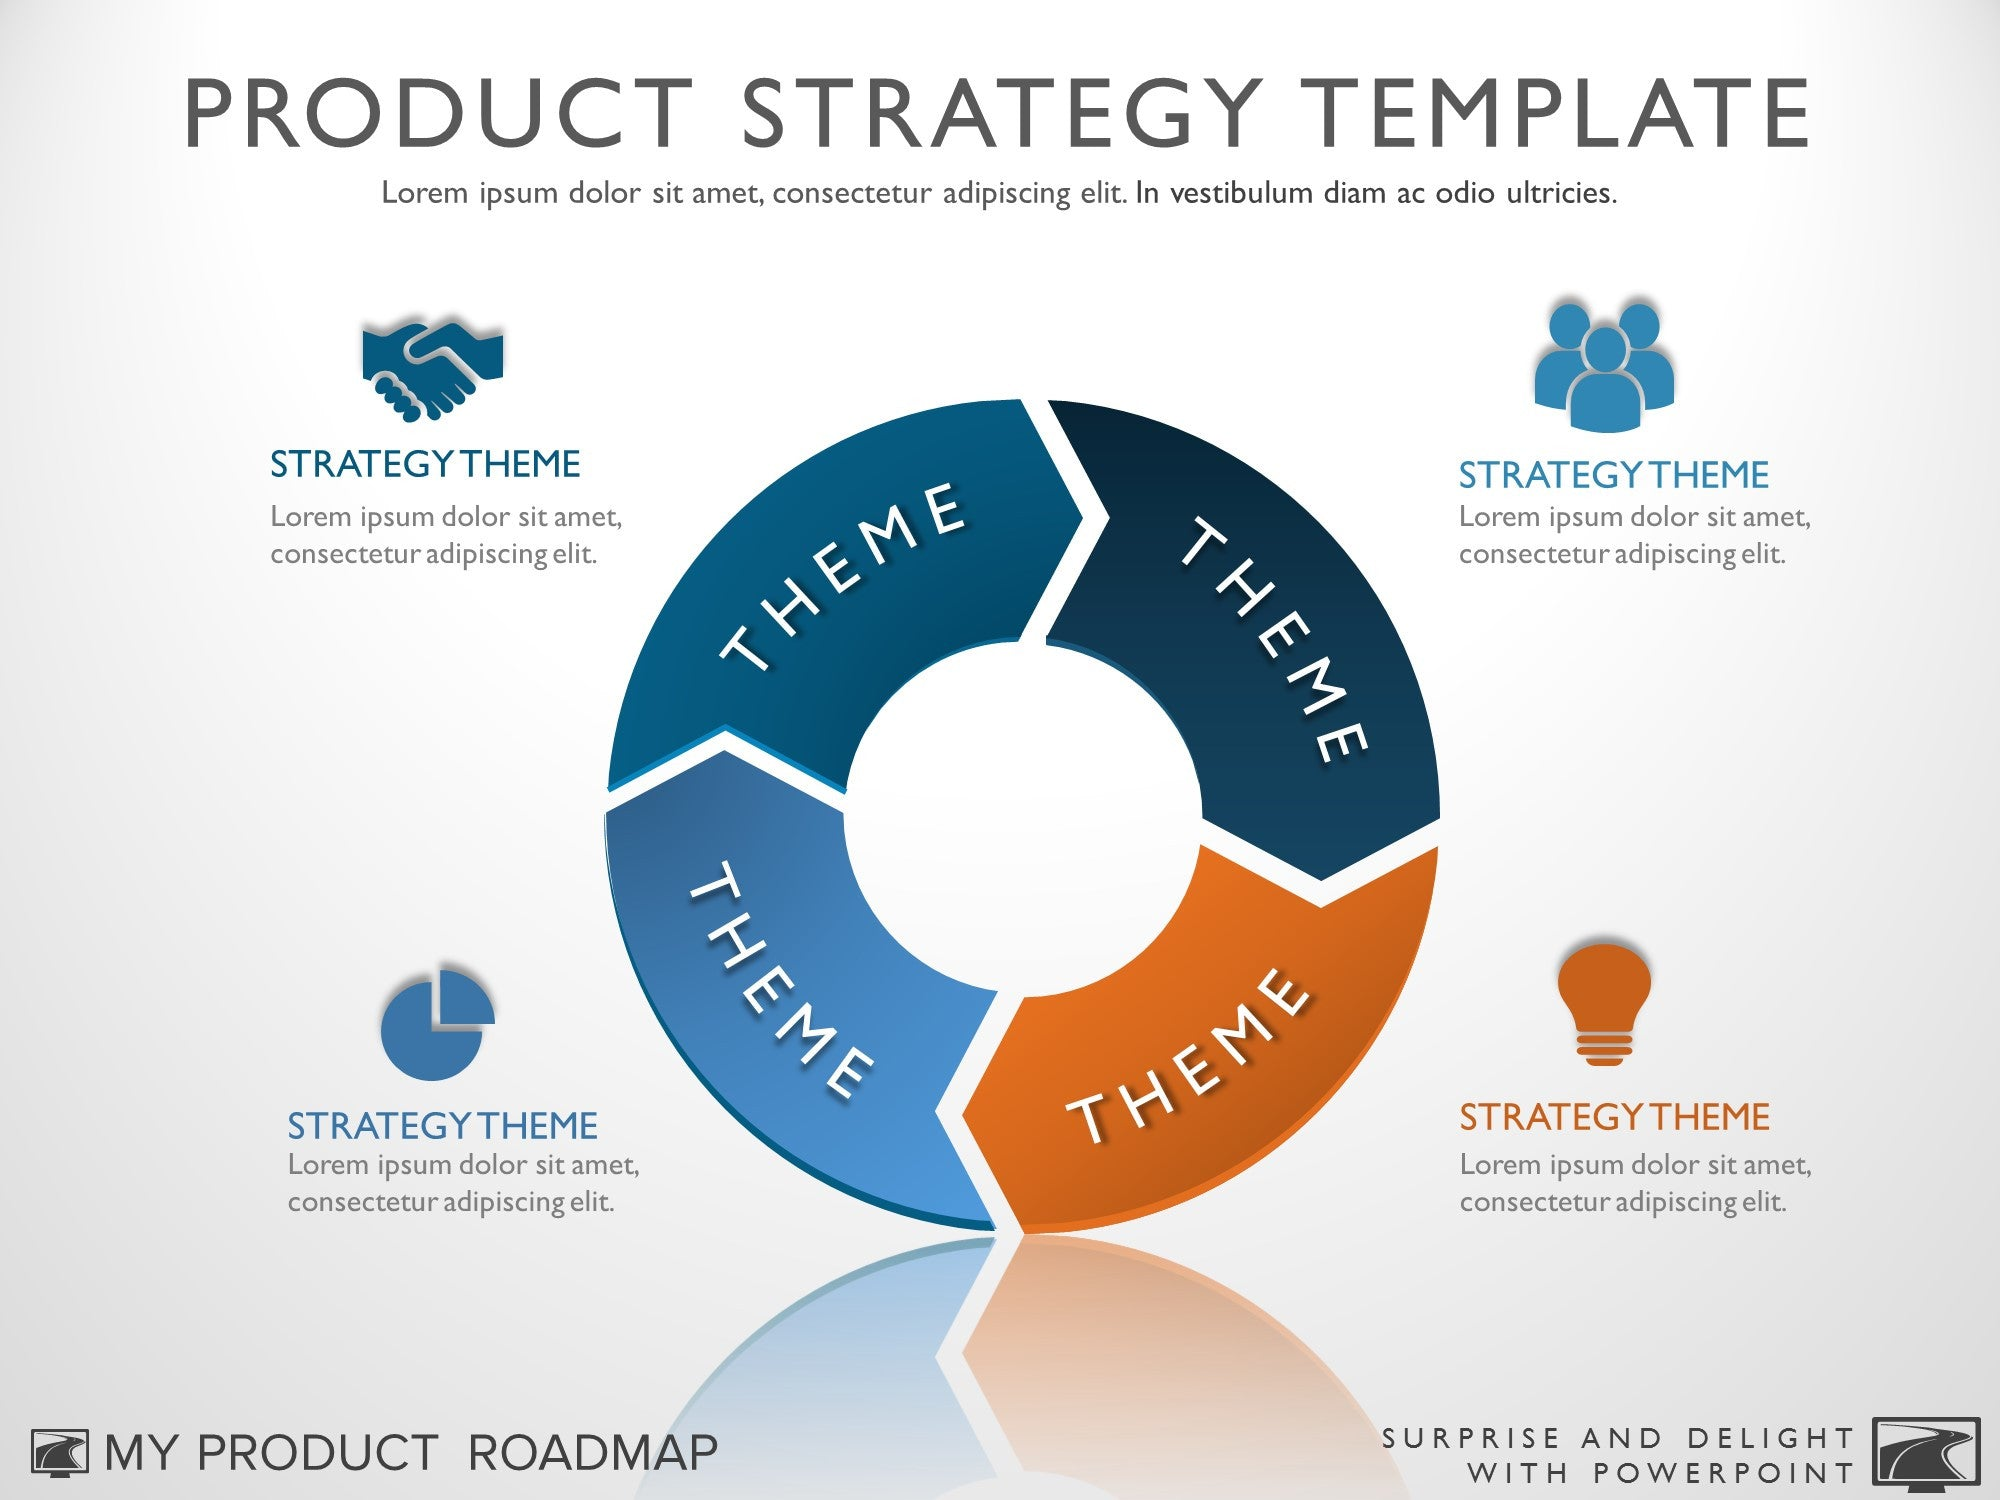 Product Strategy Template – My Product Roadmap